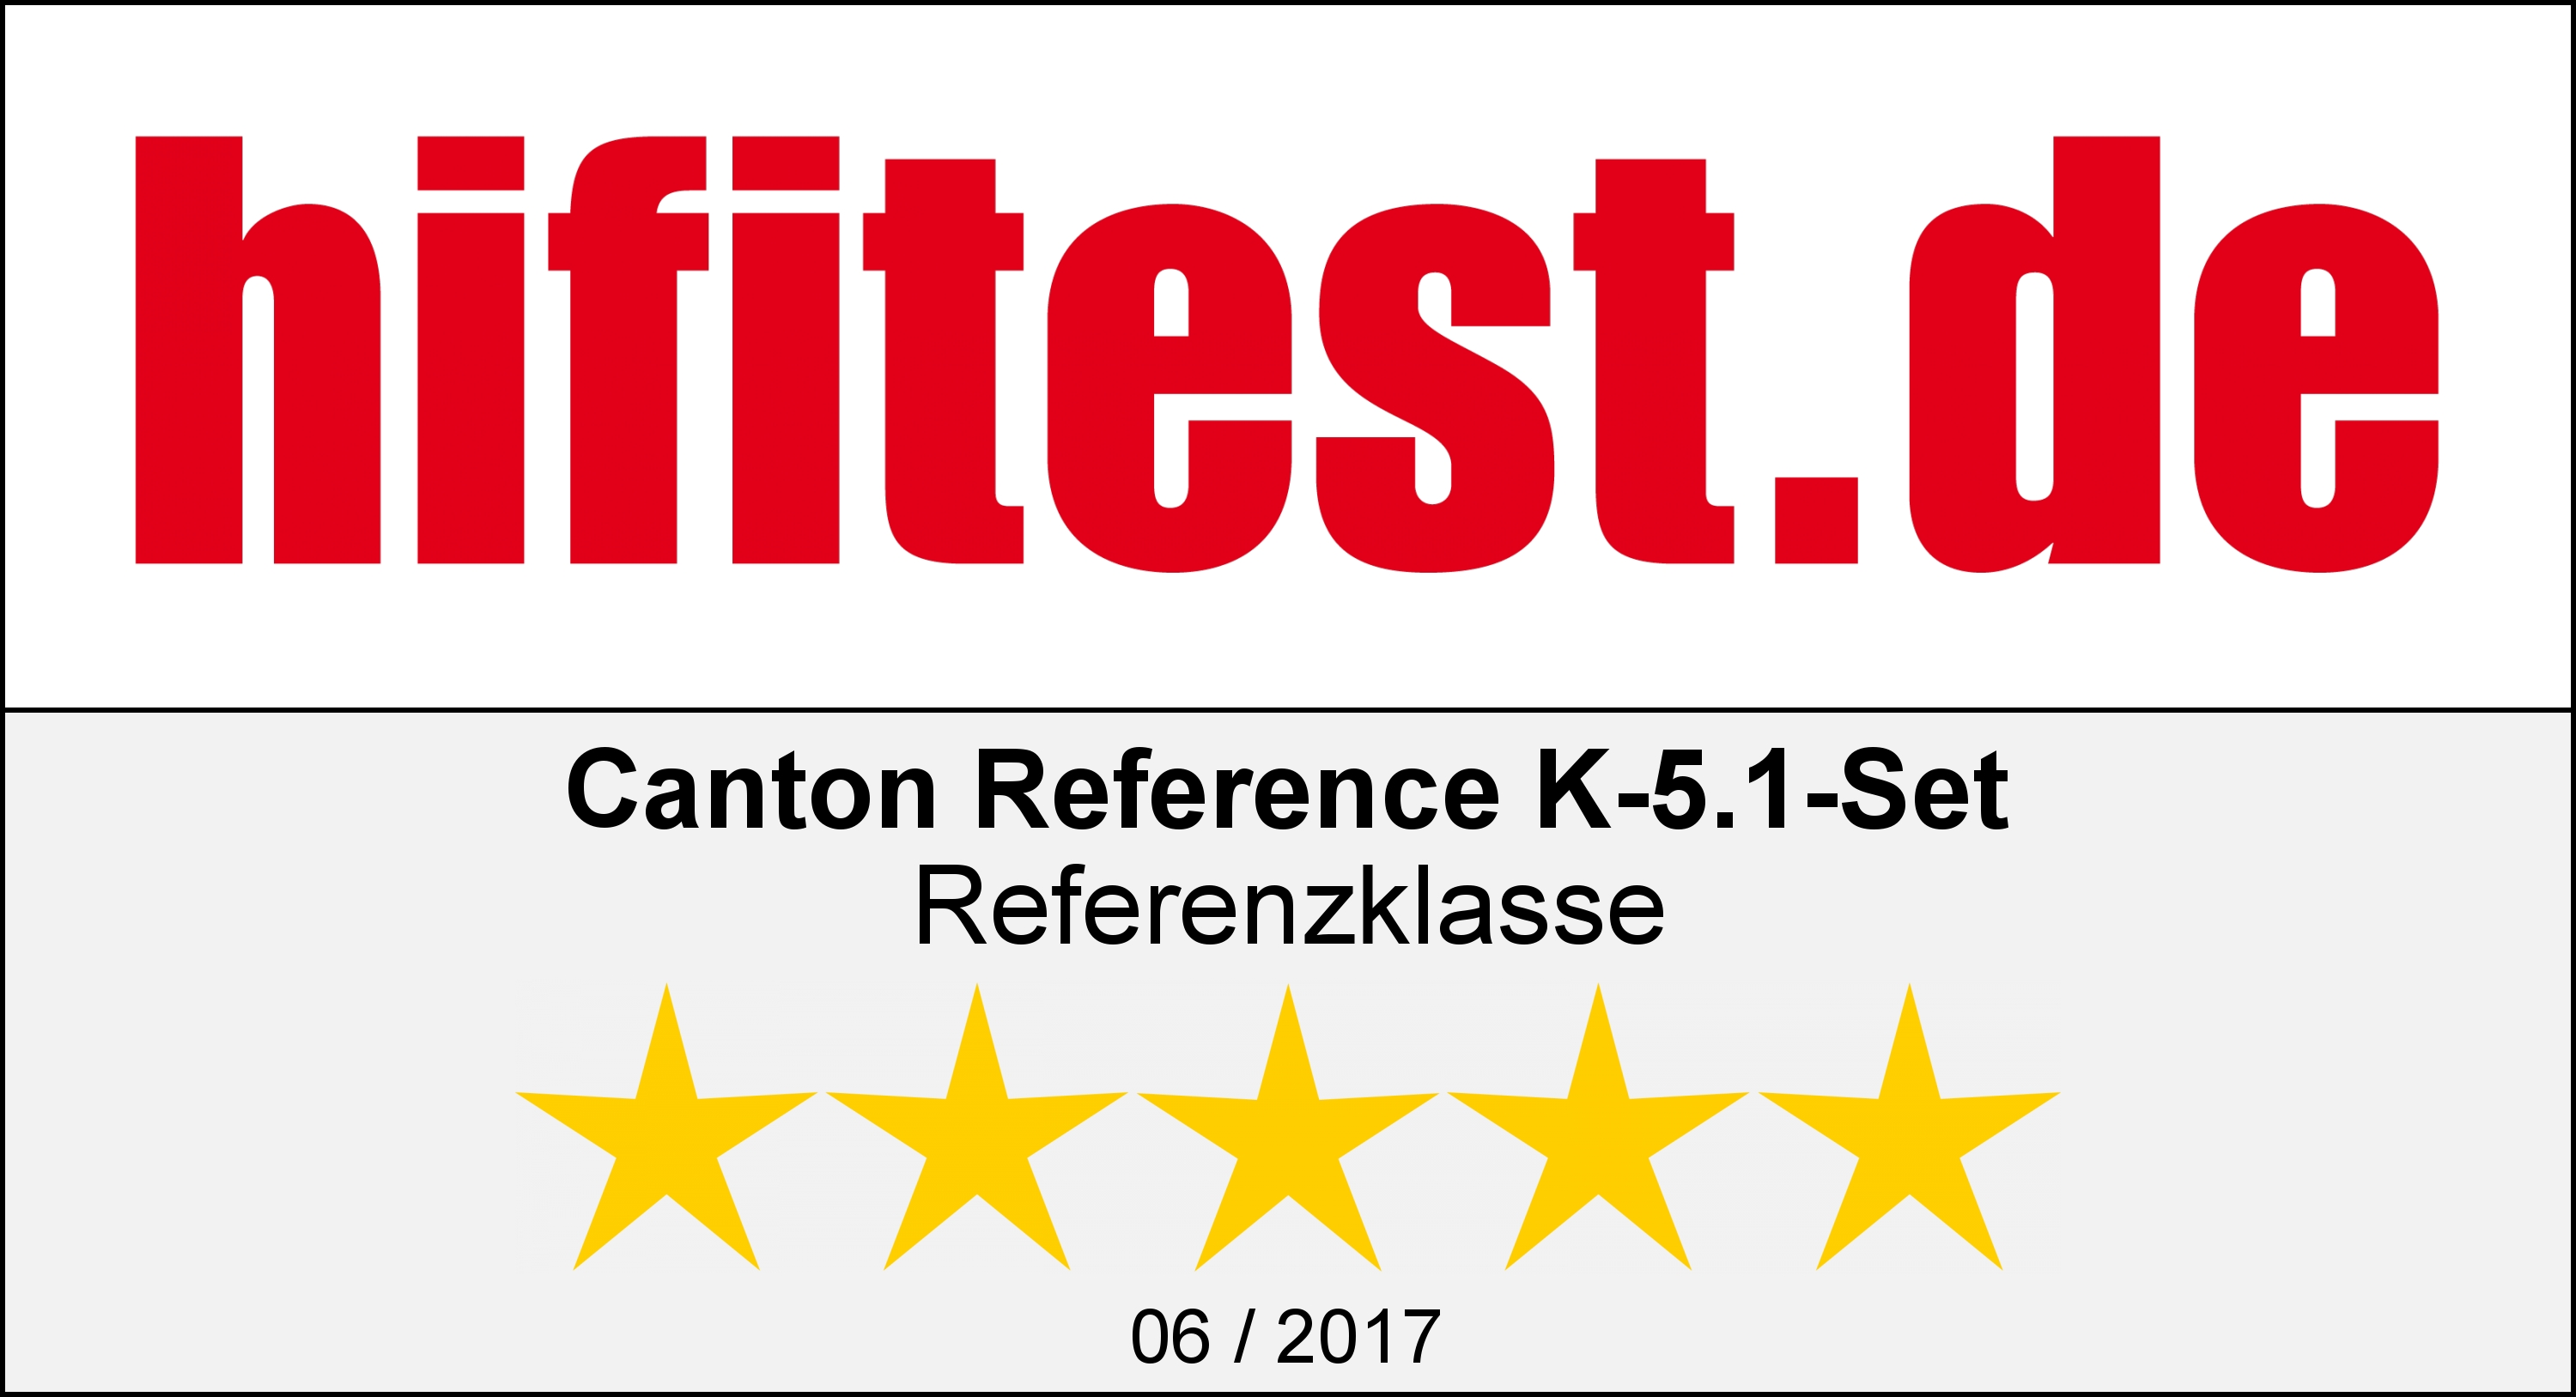 Reference_K_5-1_Set_hifitest-de_Refernzklasse